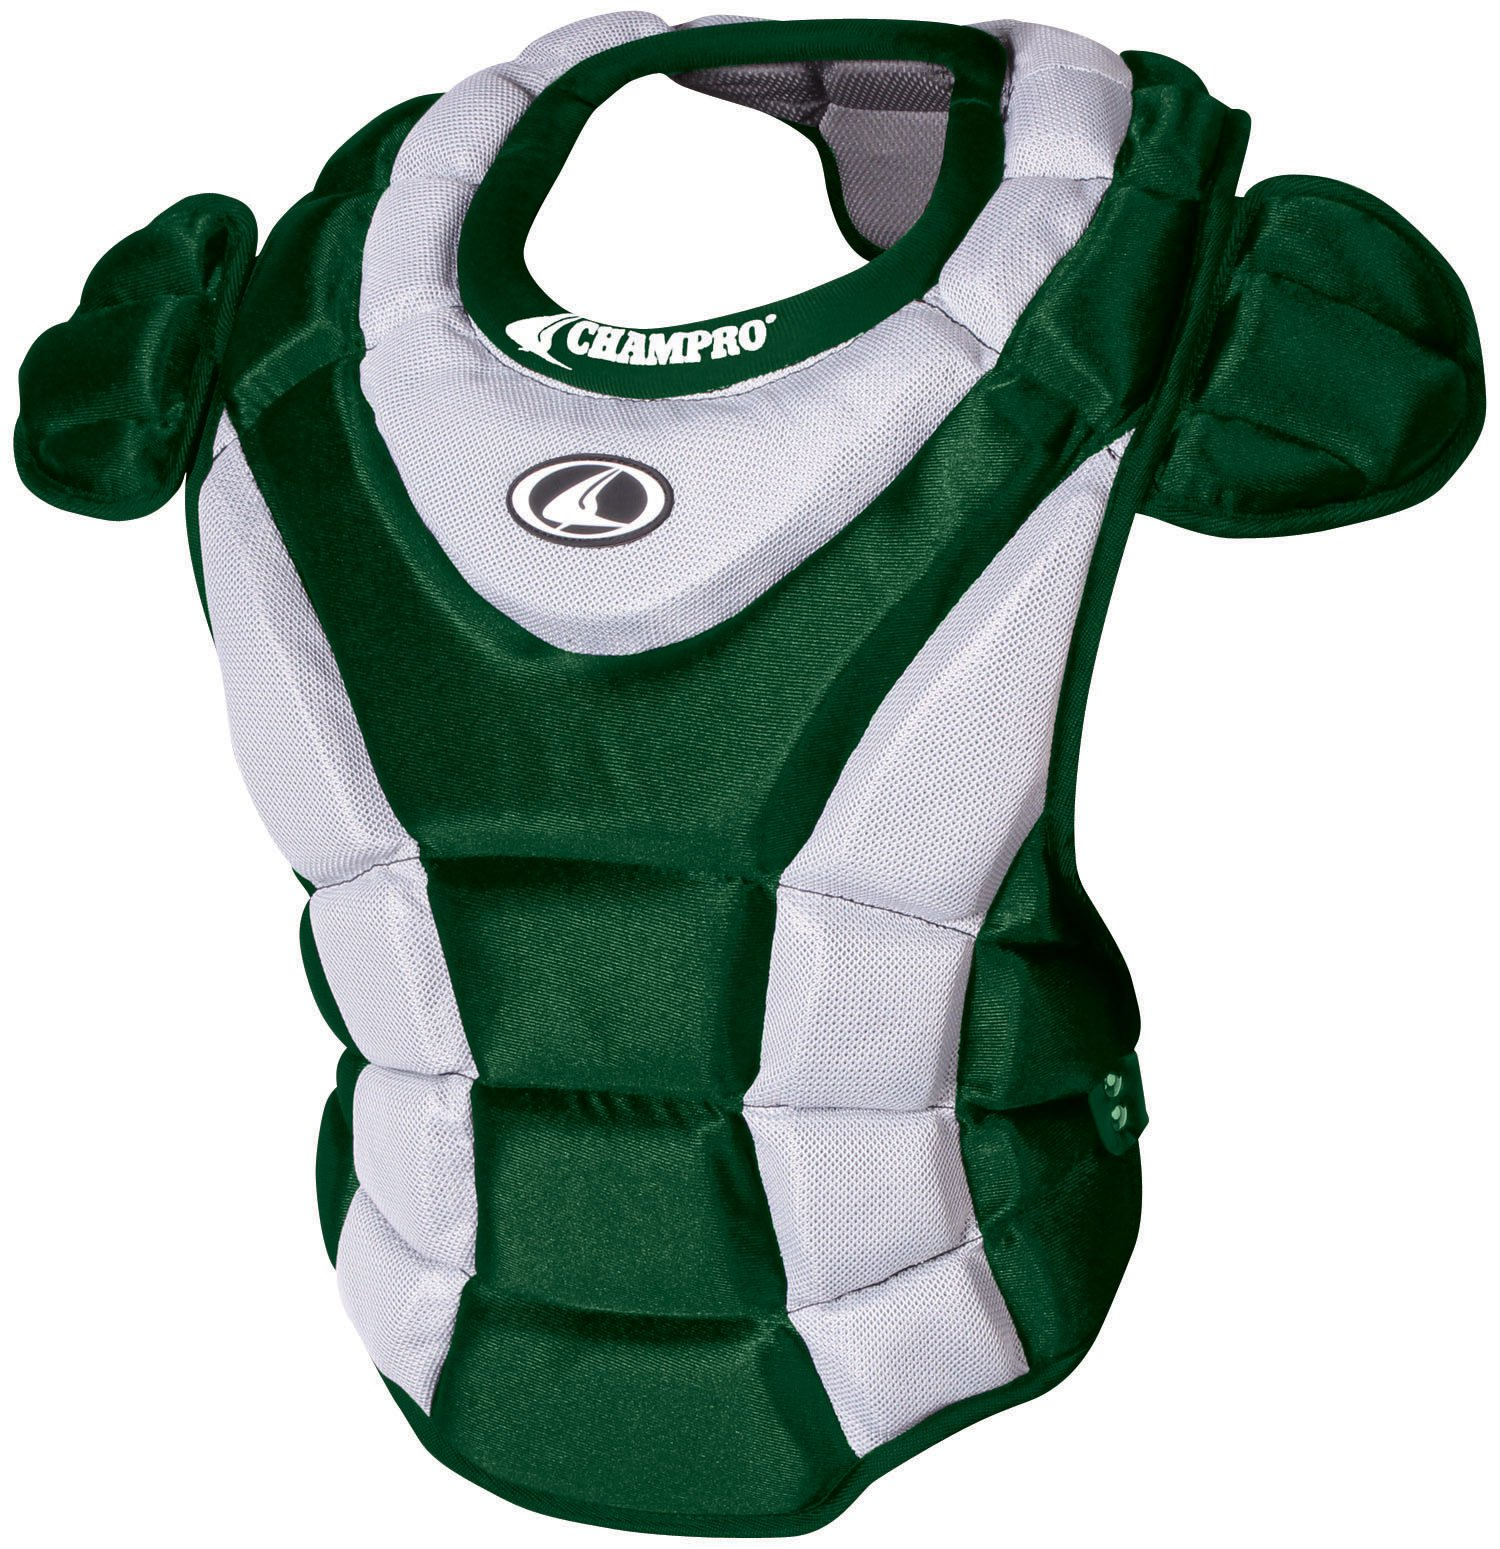 Champro Women's Chest Protector (Forest Green, 16-Inch length)